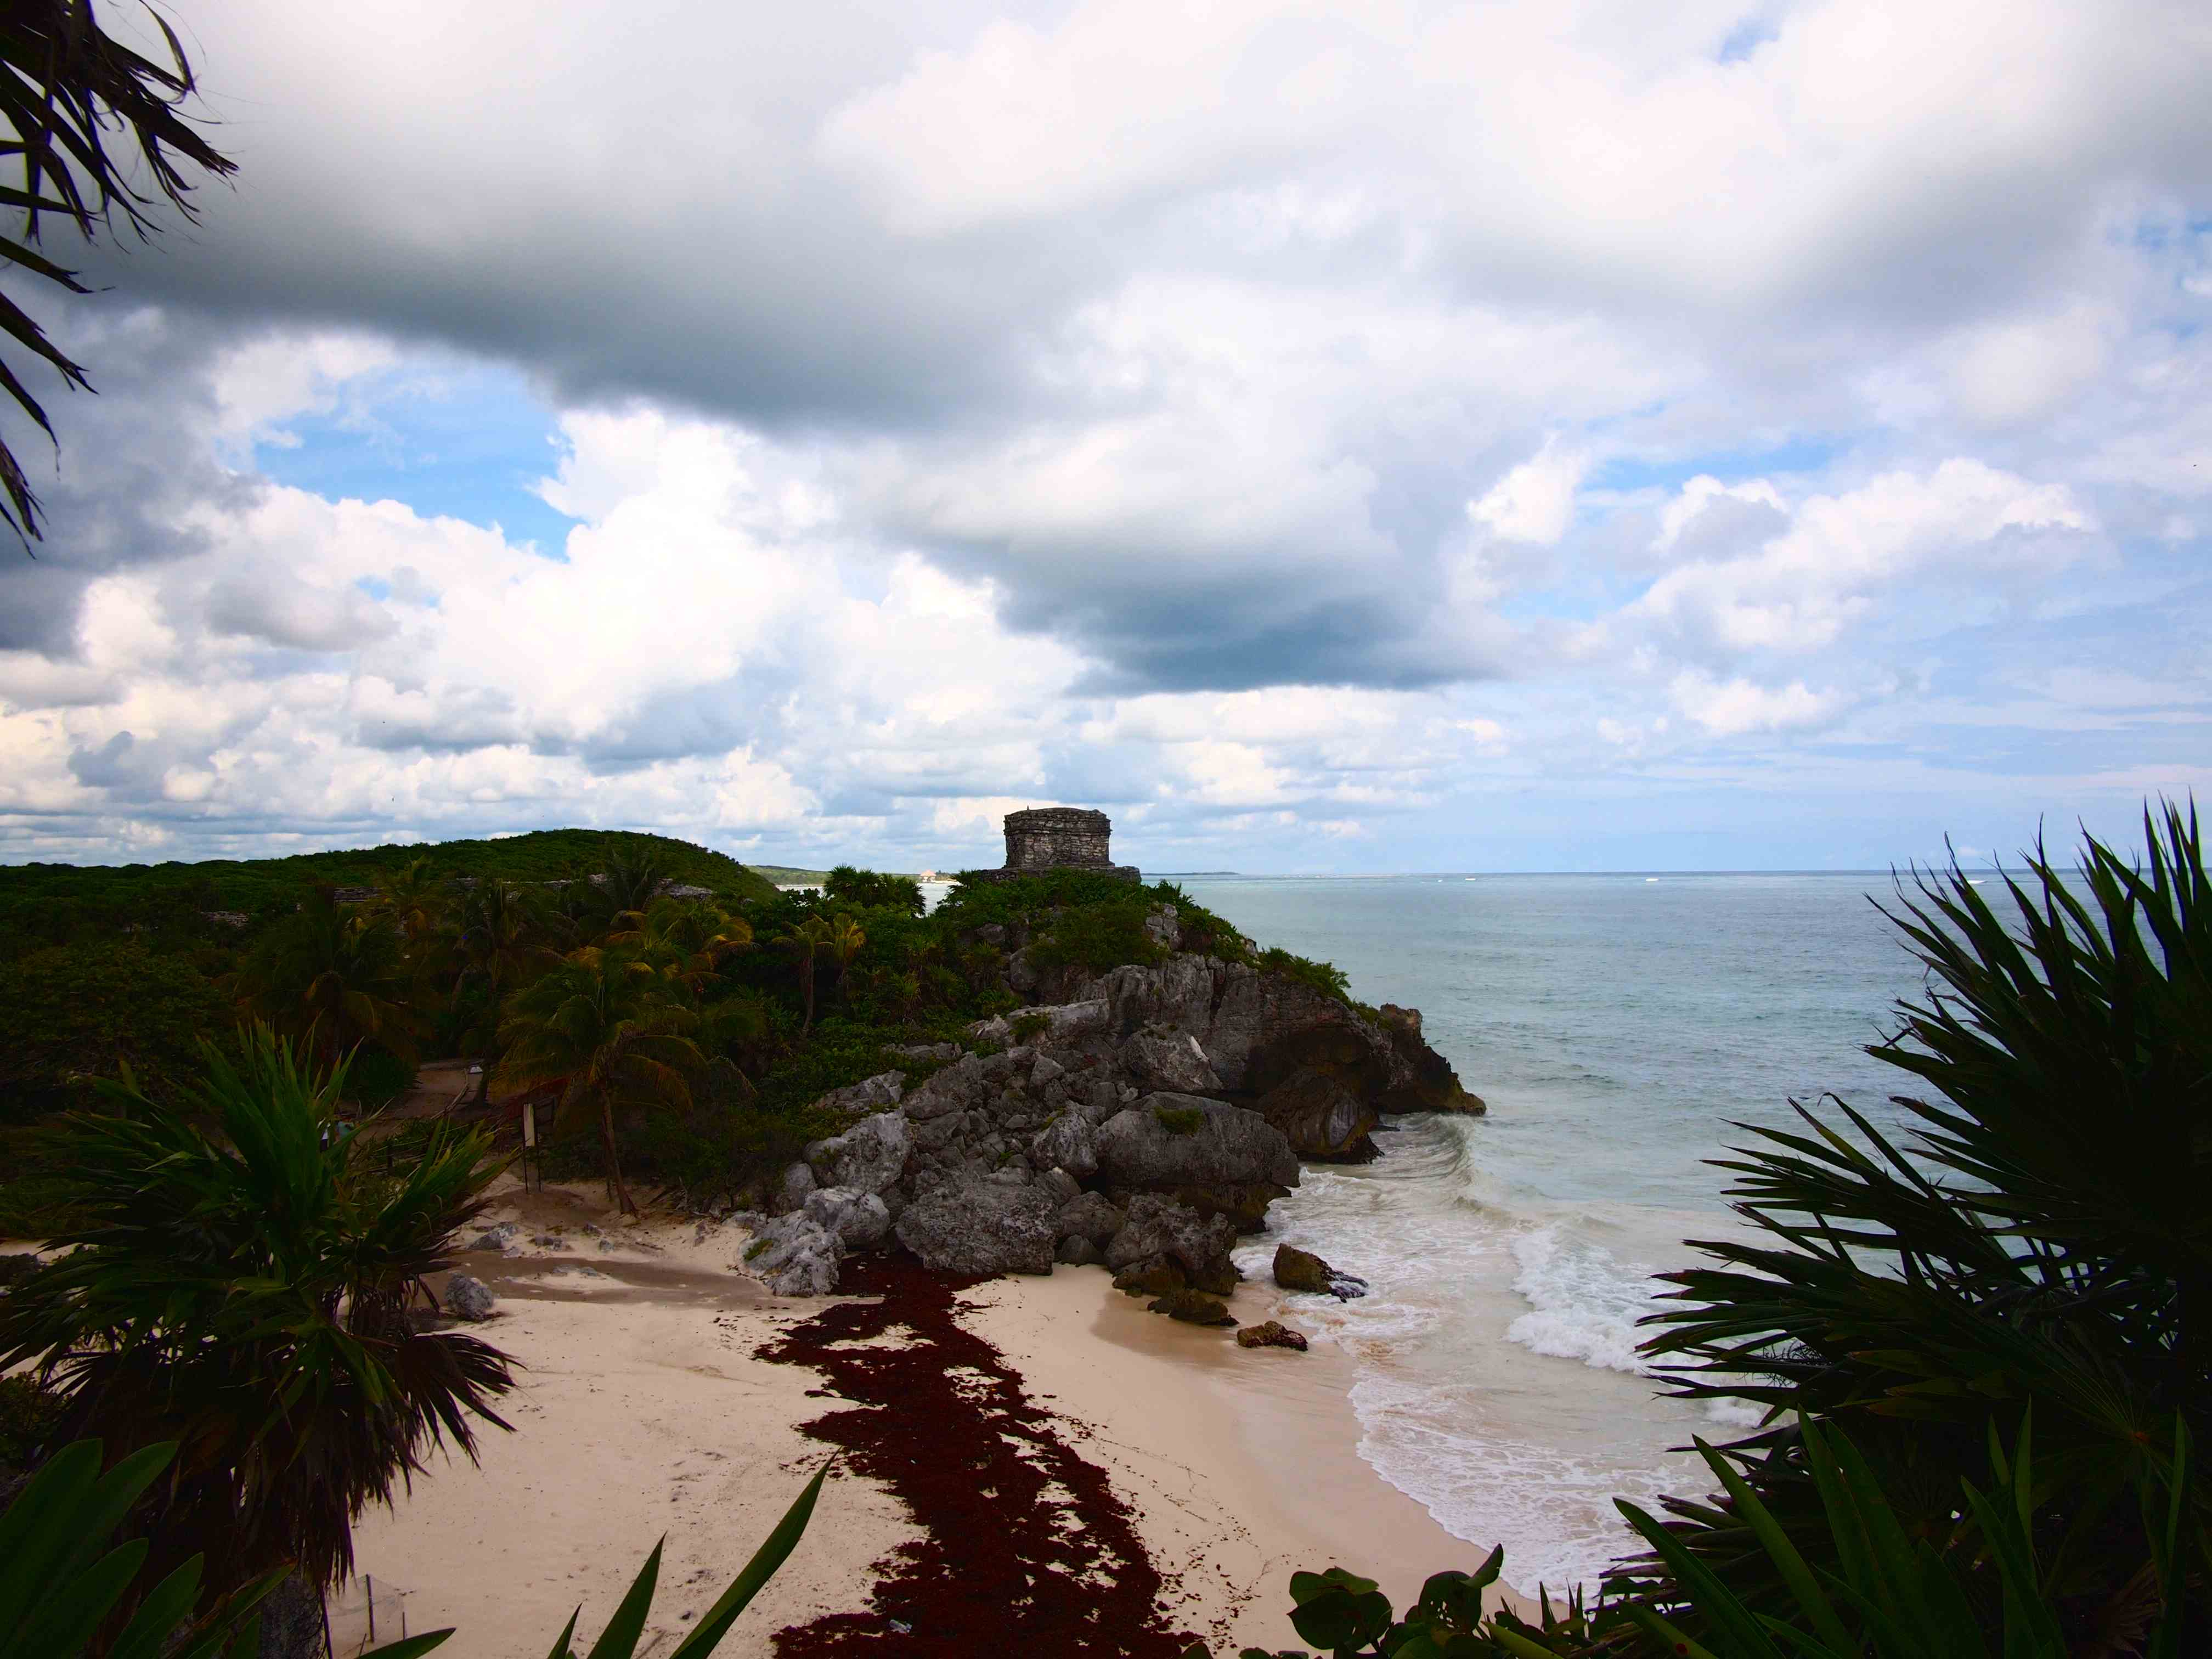 Exploring Mayan Ruins in Mexico: Ek Balam and Tulum